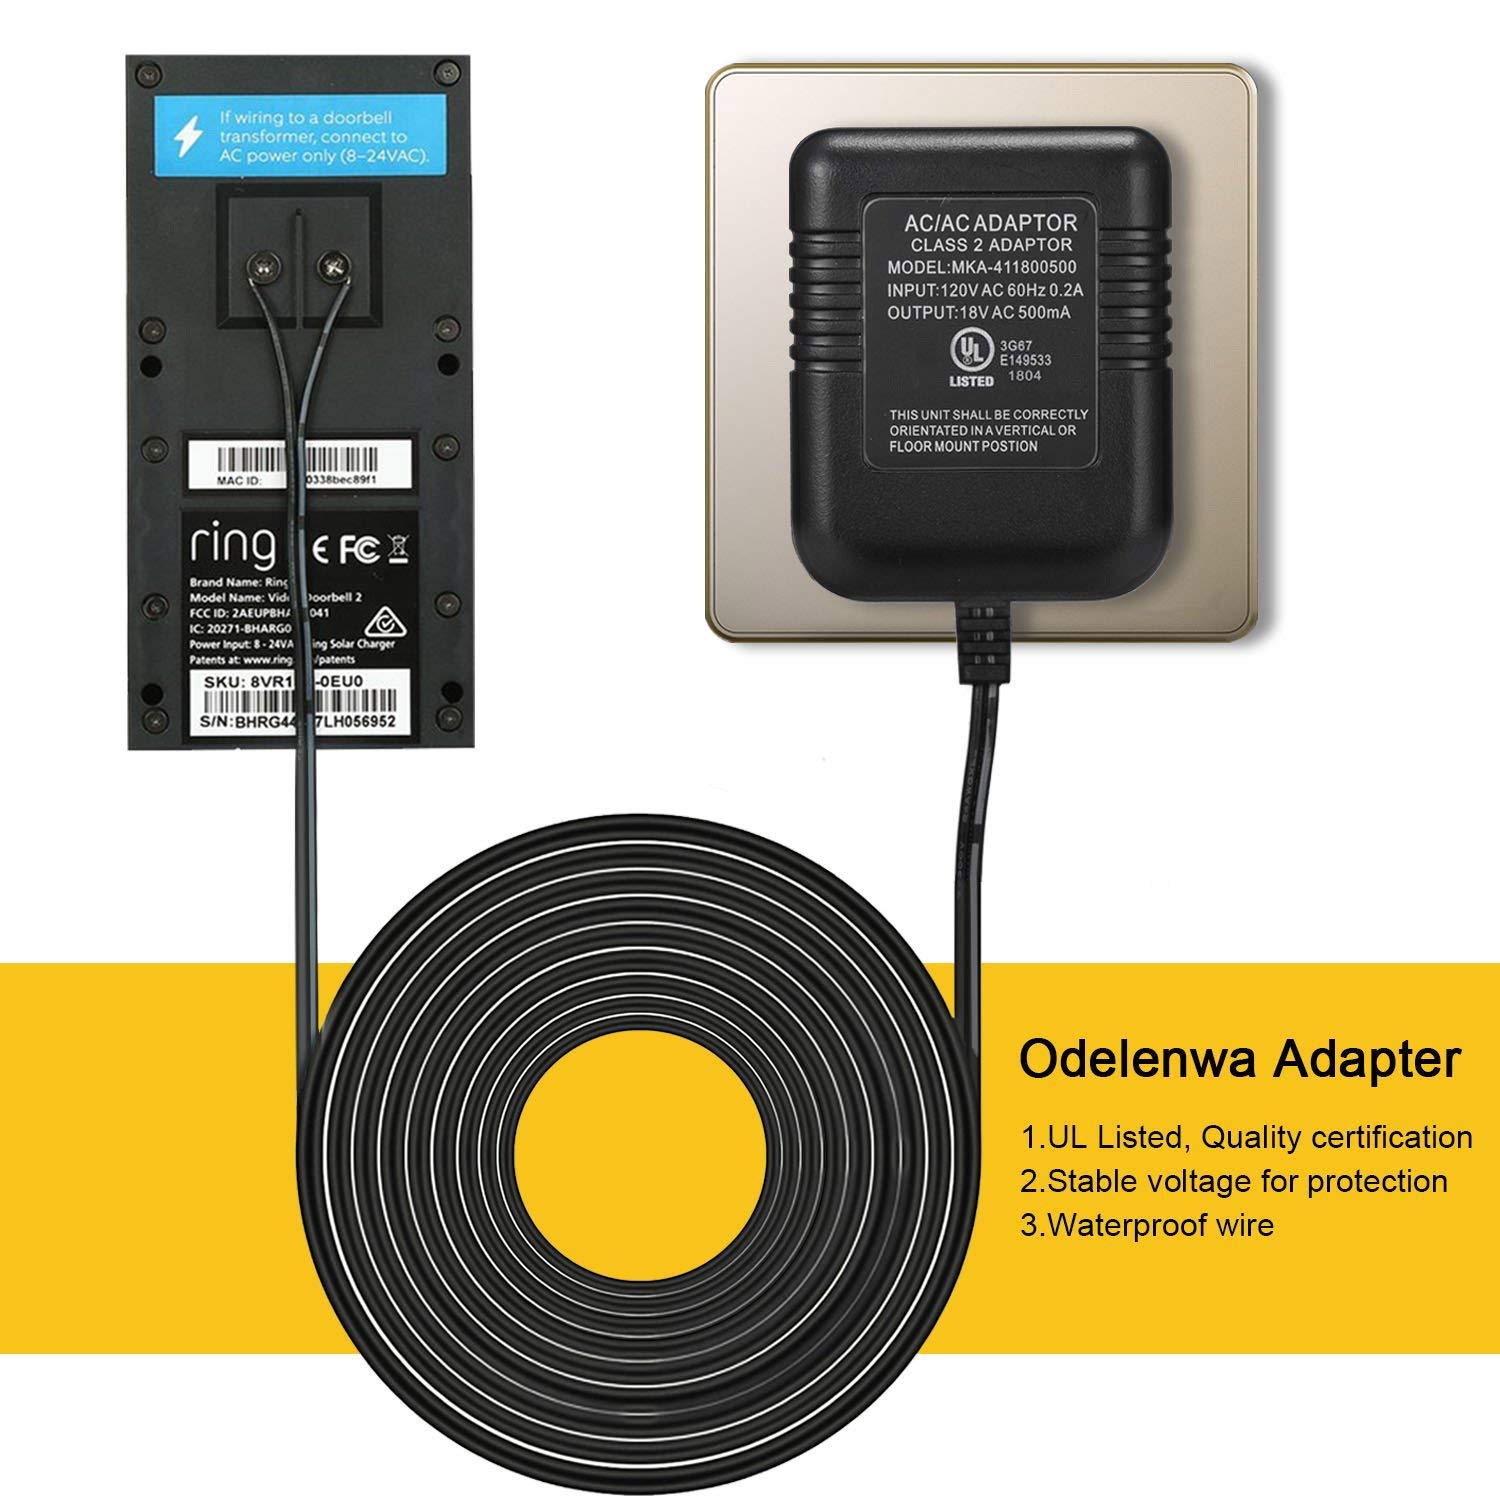 Power Adapter for RING Doorbell, UL Certificated Power Supply for RING Video Doorbell, RING Video Doorbell 2 & RING Video Doorbell Pro Battery Charger by ODELENWA (Image #4)